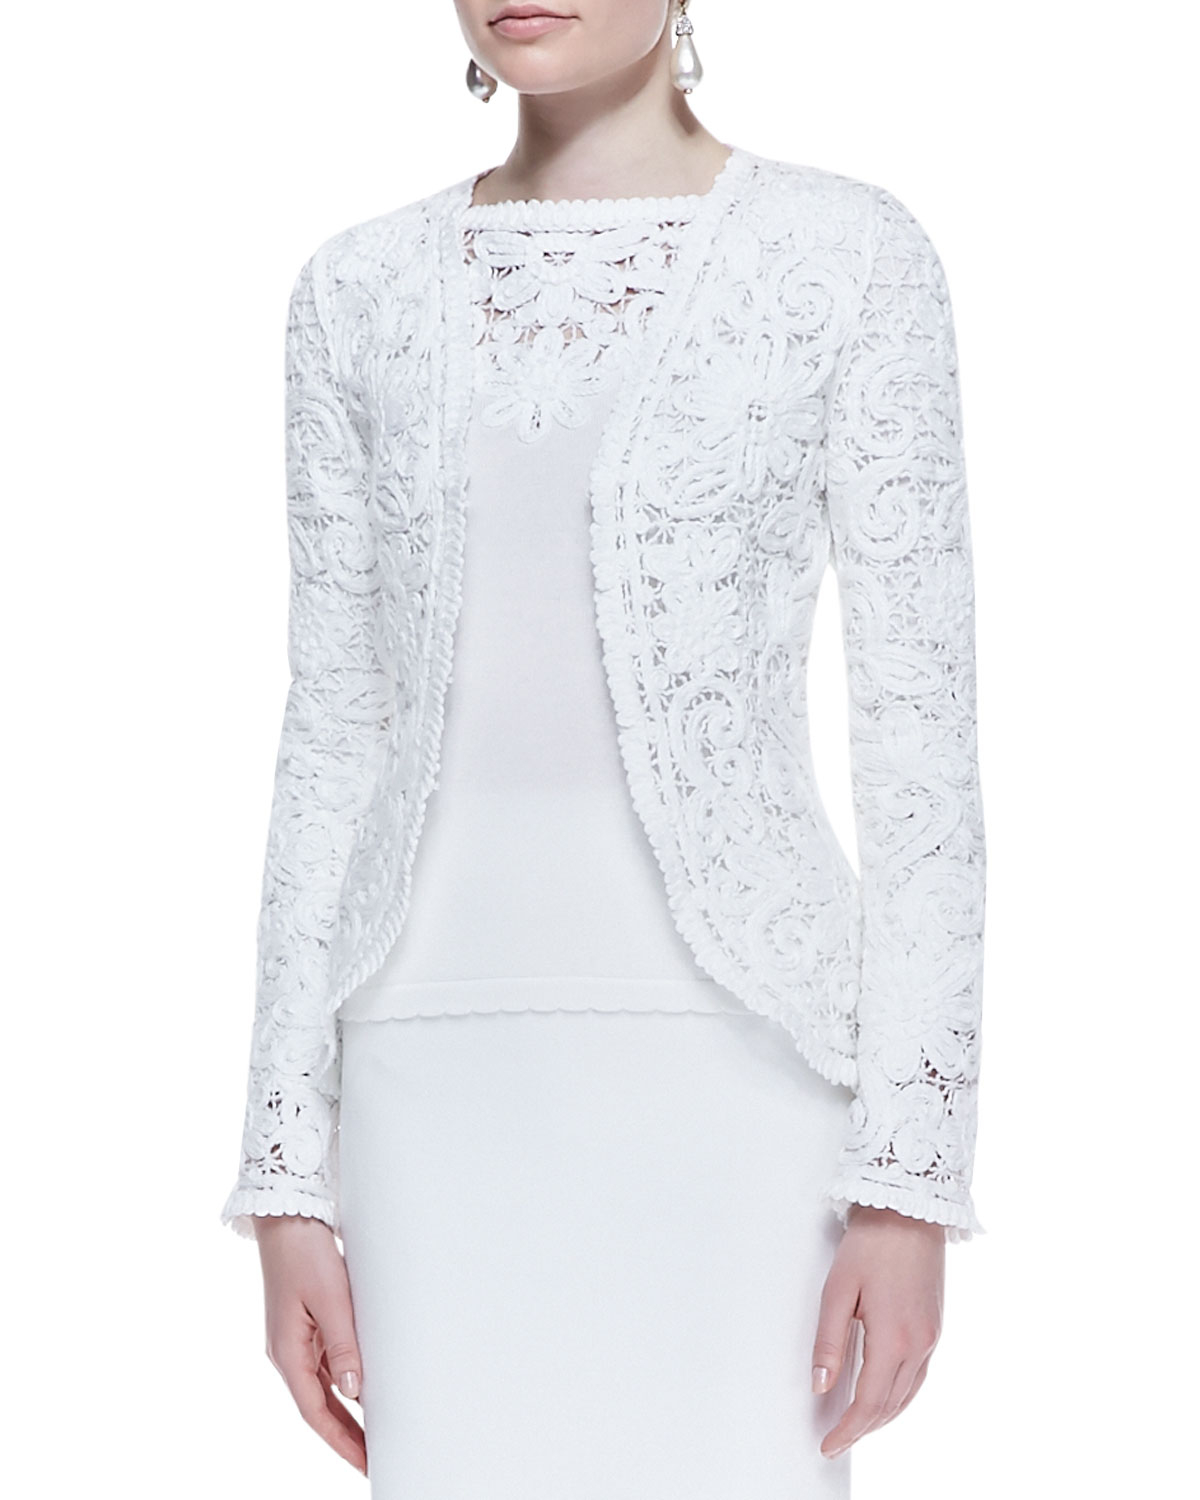 White Lace Jacket with Sleeves